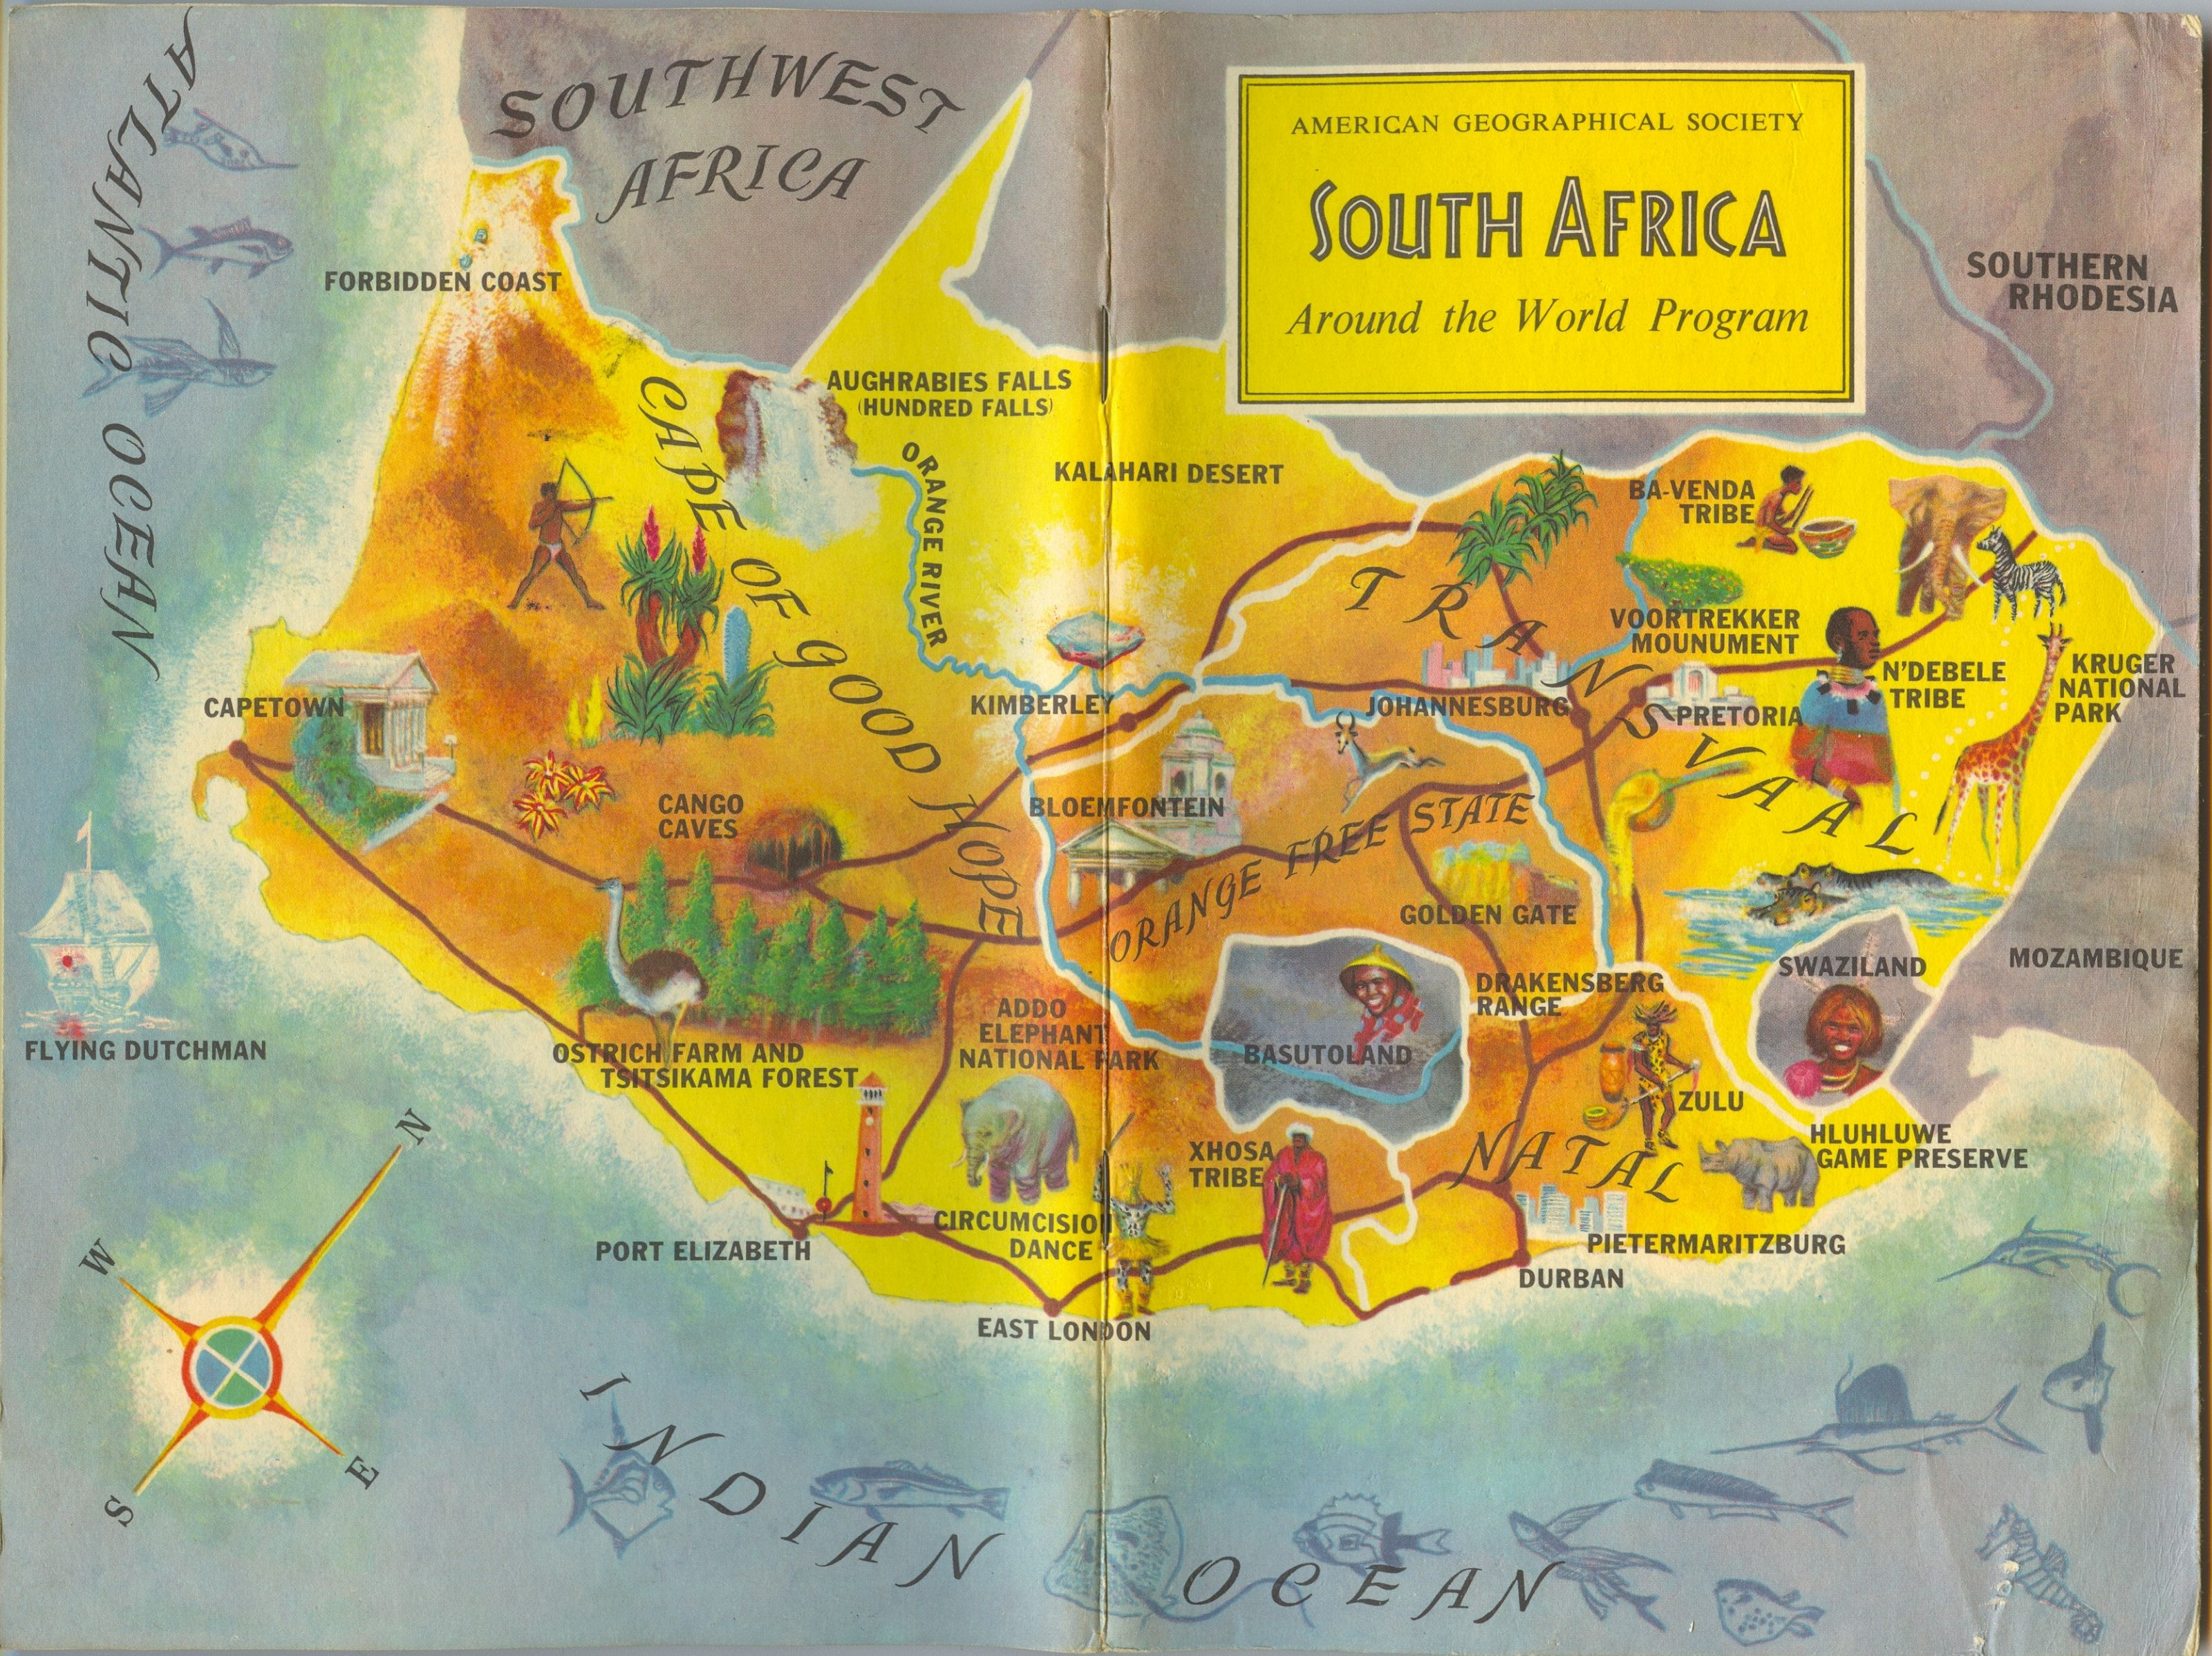 South Africa v02 American Geographical Society Around